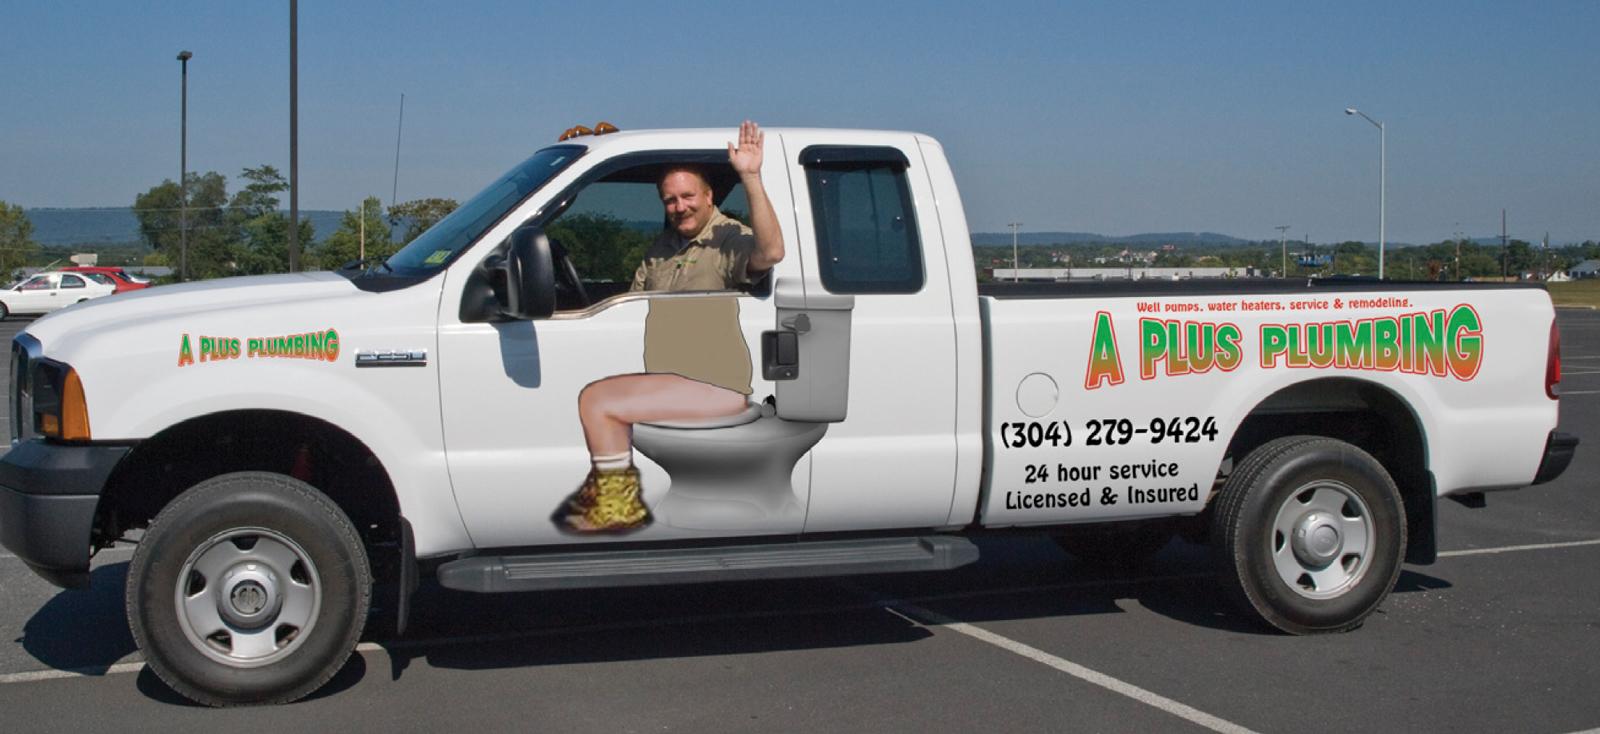 A Local Plumbers Truck Decal Funny